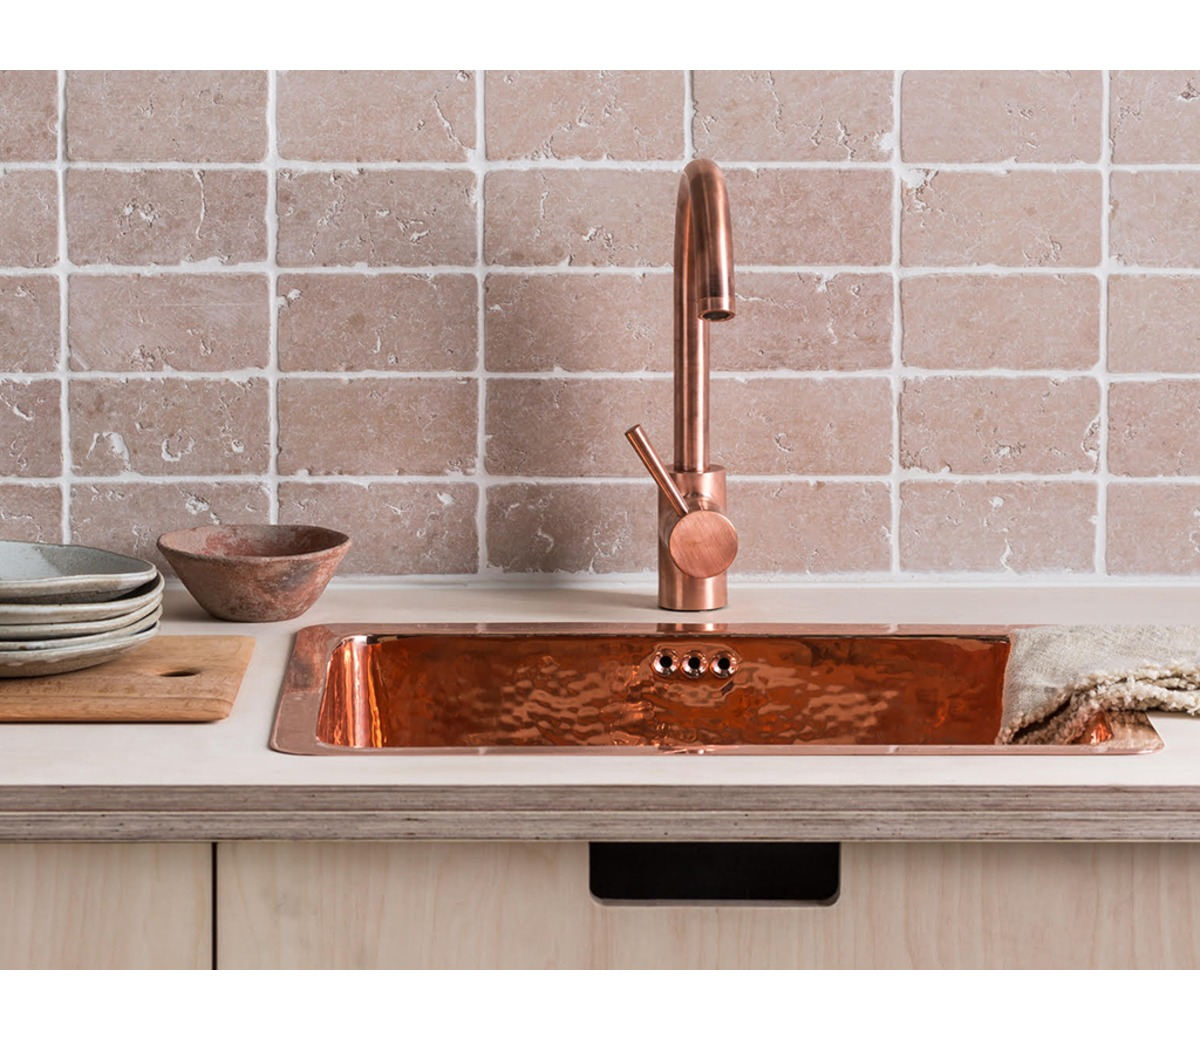 Copper Taps Copper Mixer Tap High Swivel Spout The French House